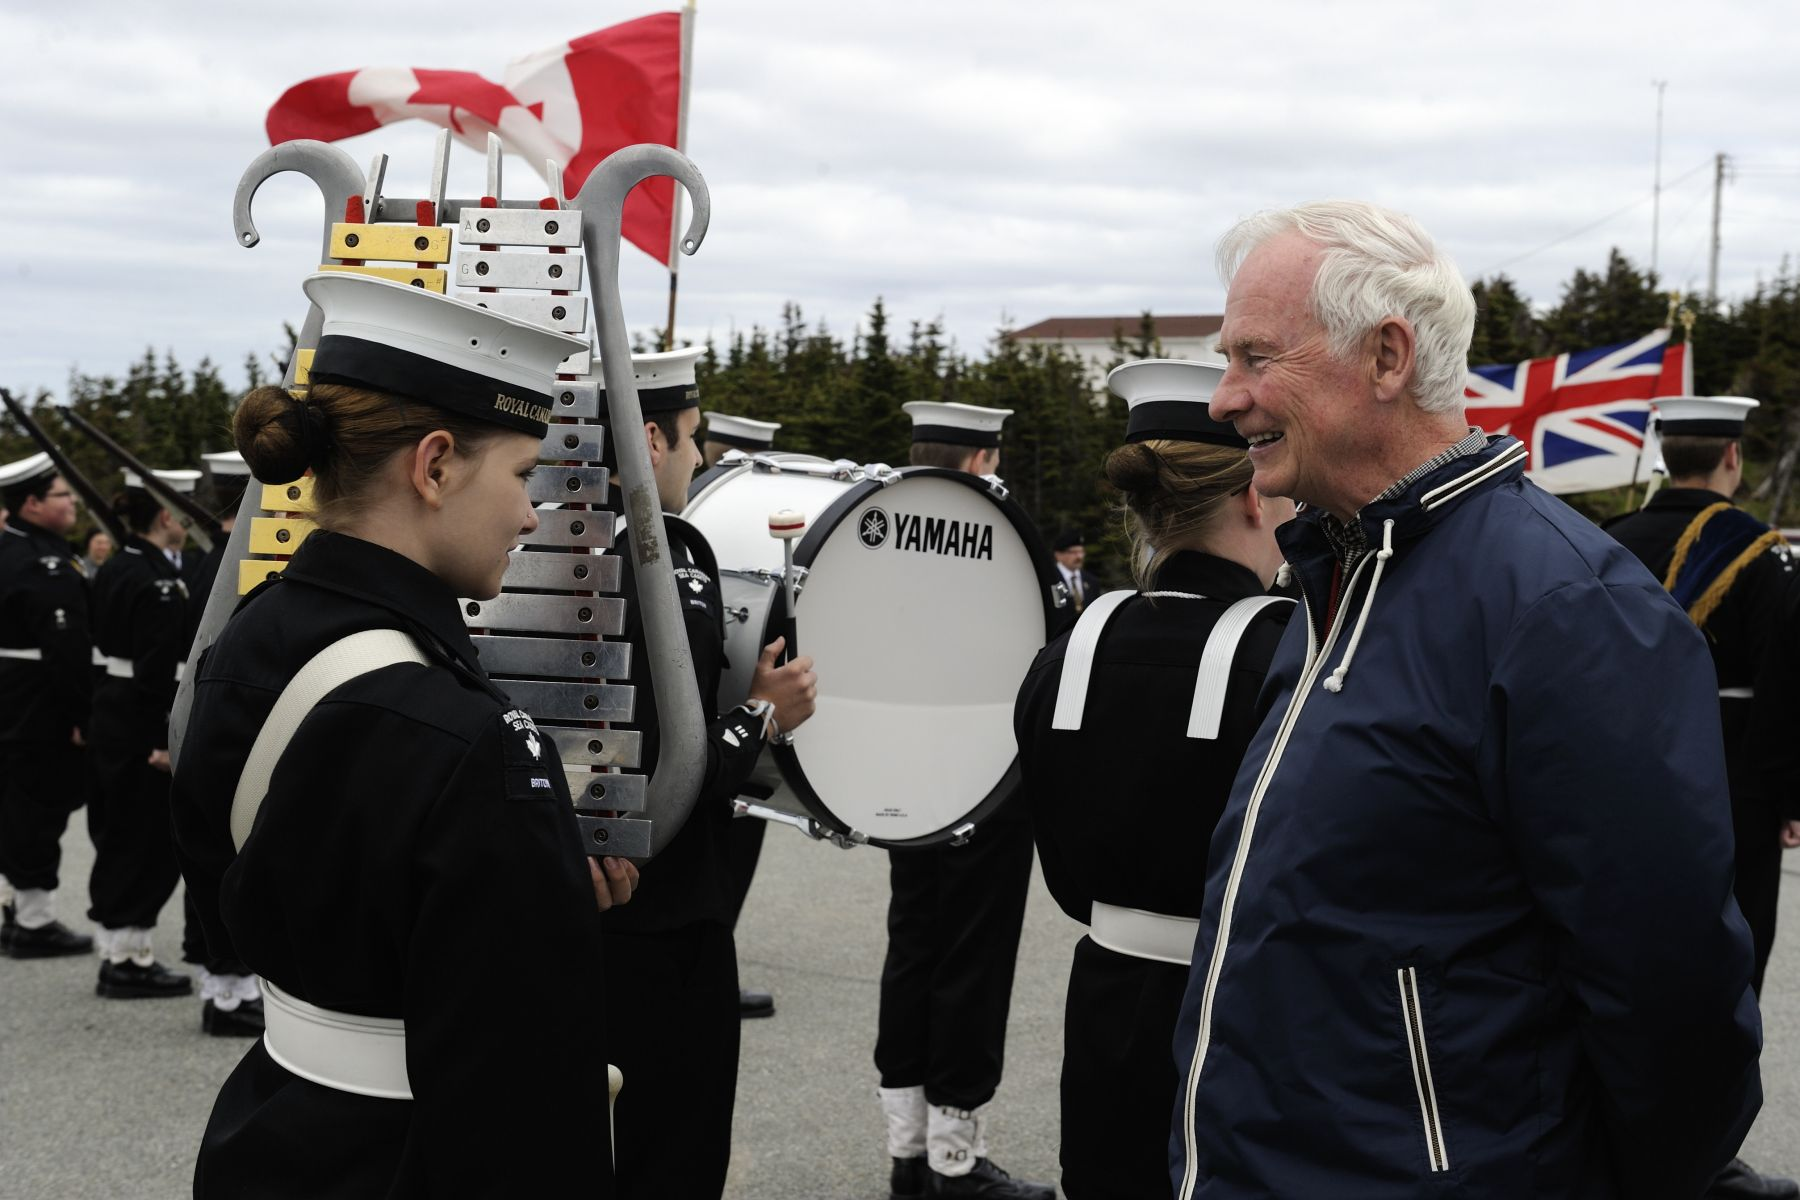 Their Excellencies ended their official visit to the province of Newfoundland and Labrador in Twillingate, the iceberg capital of the world. At the official welcoming ceremony, His Excellency spoke to a young cadet during the inspection of the guard.